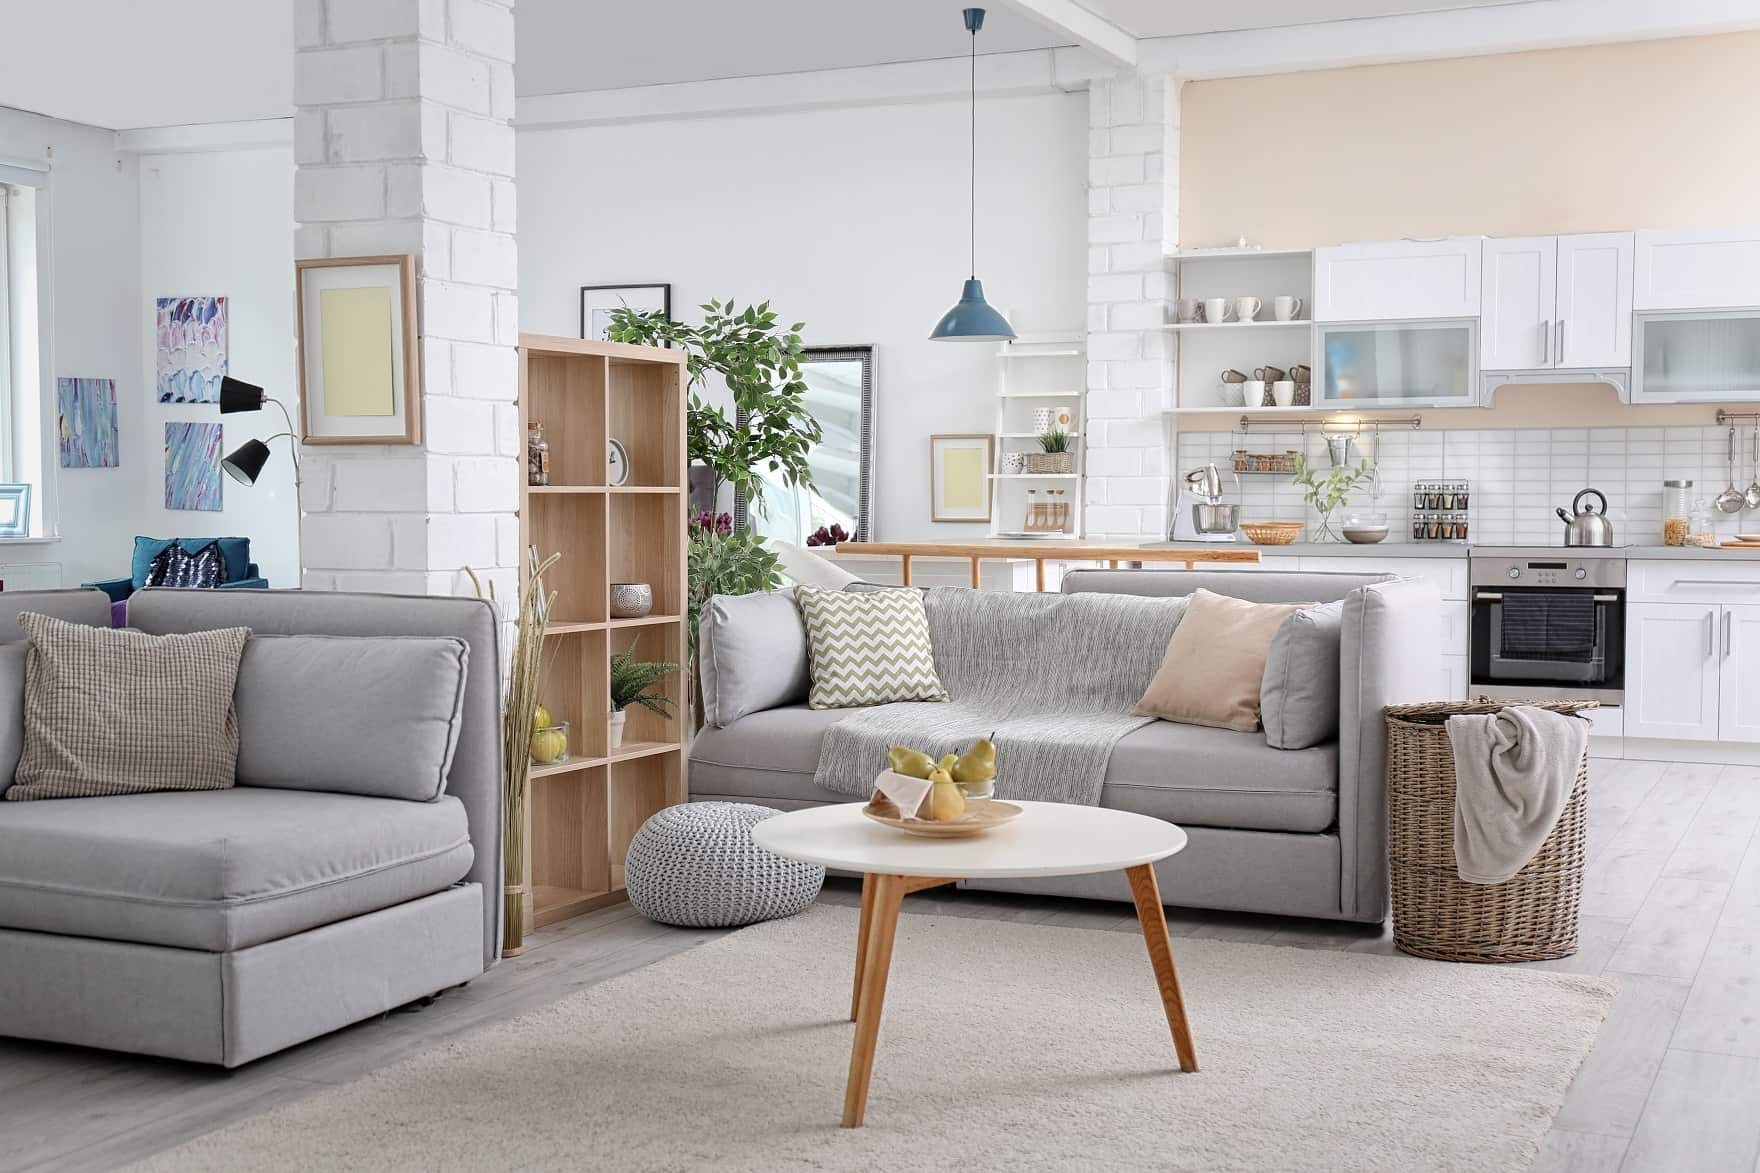 How To Design Your Interior To Make It Look Clean. Casual open layout cottage design with gray furniture and wooden inlays